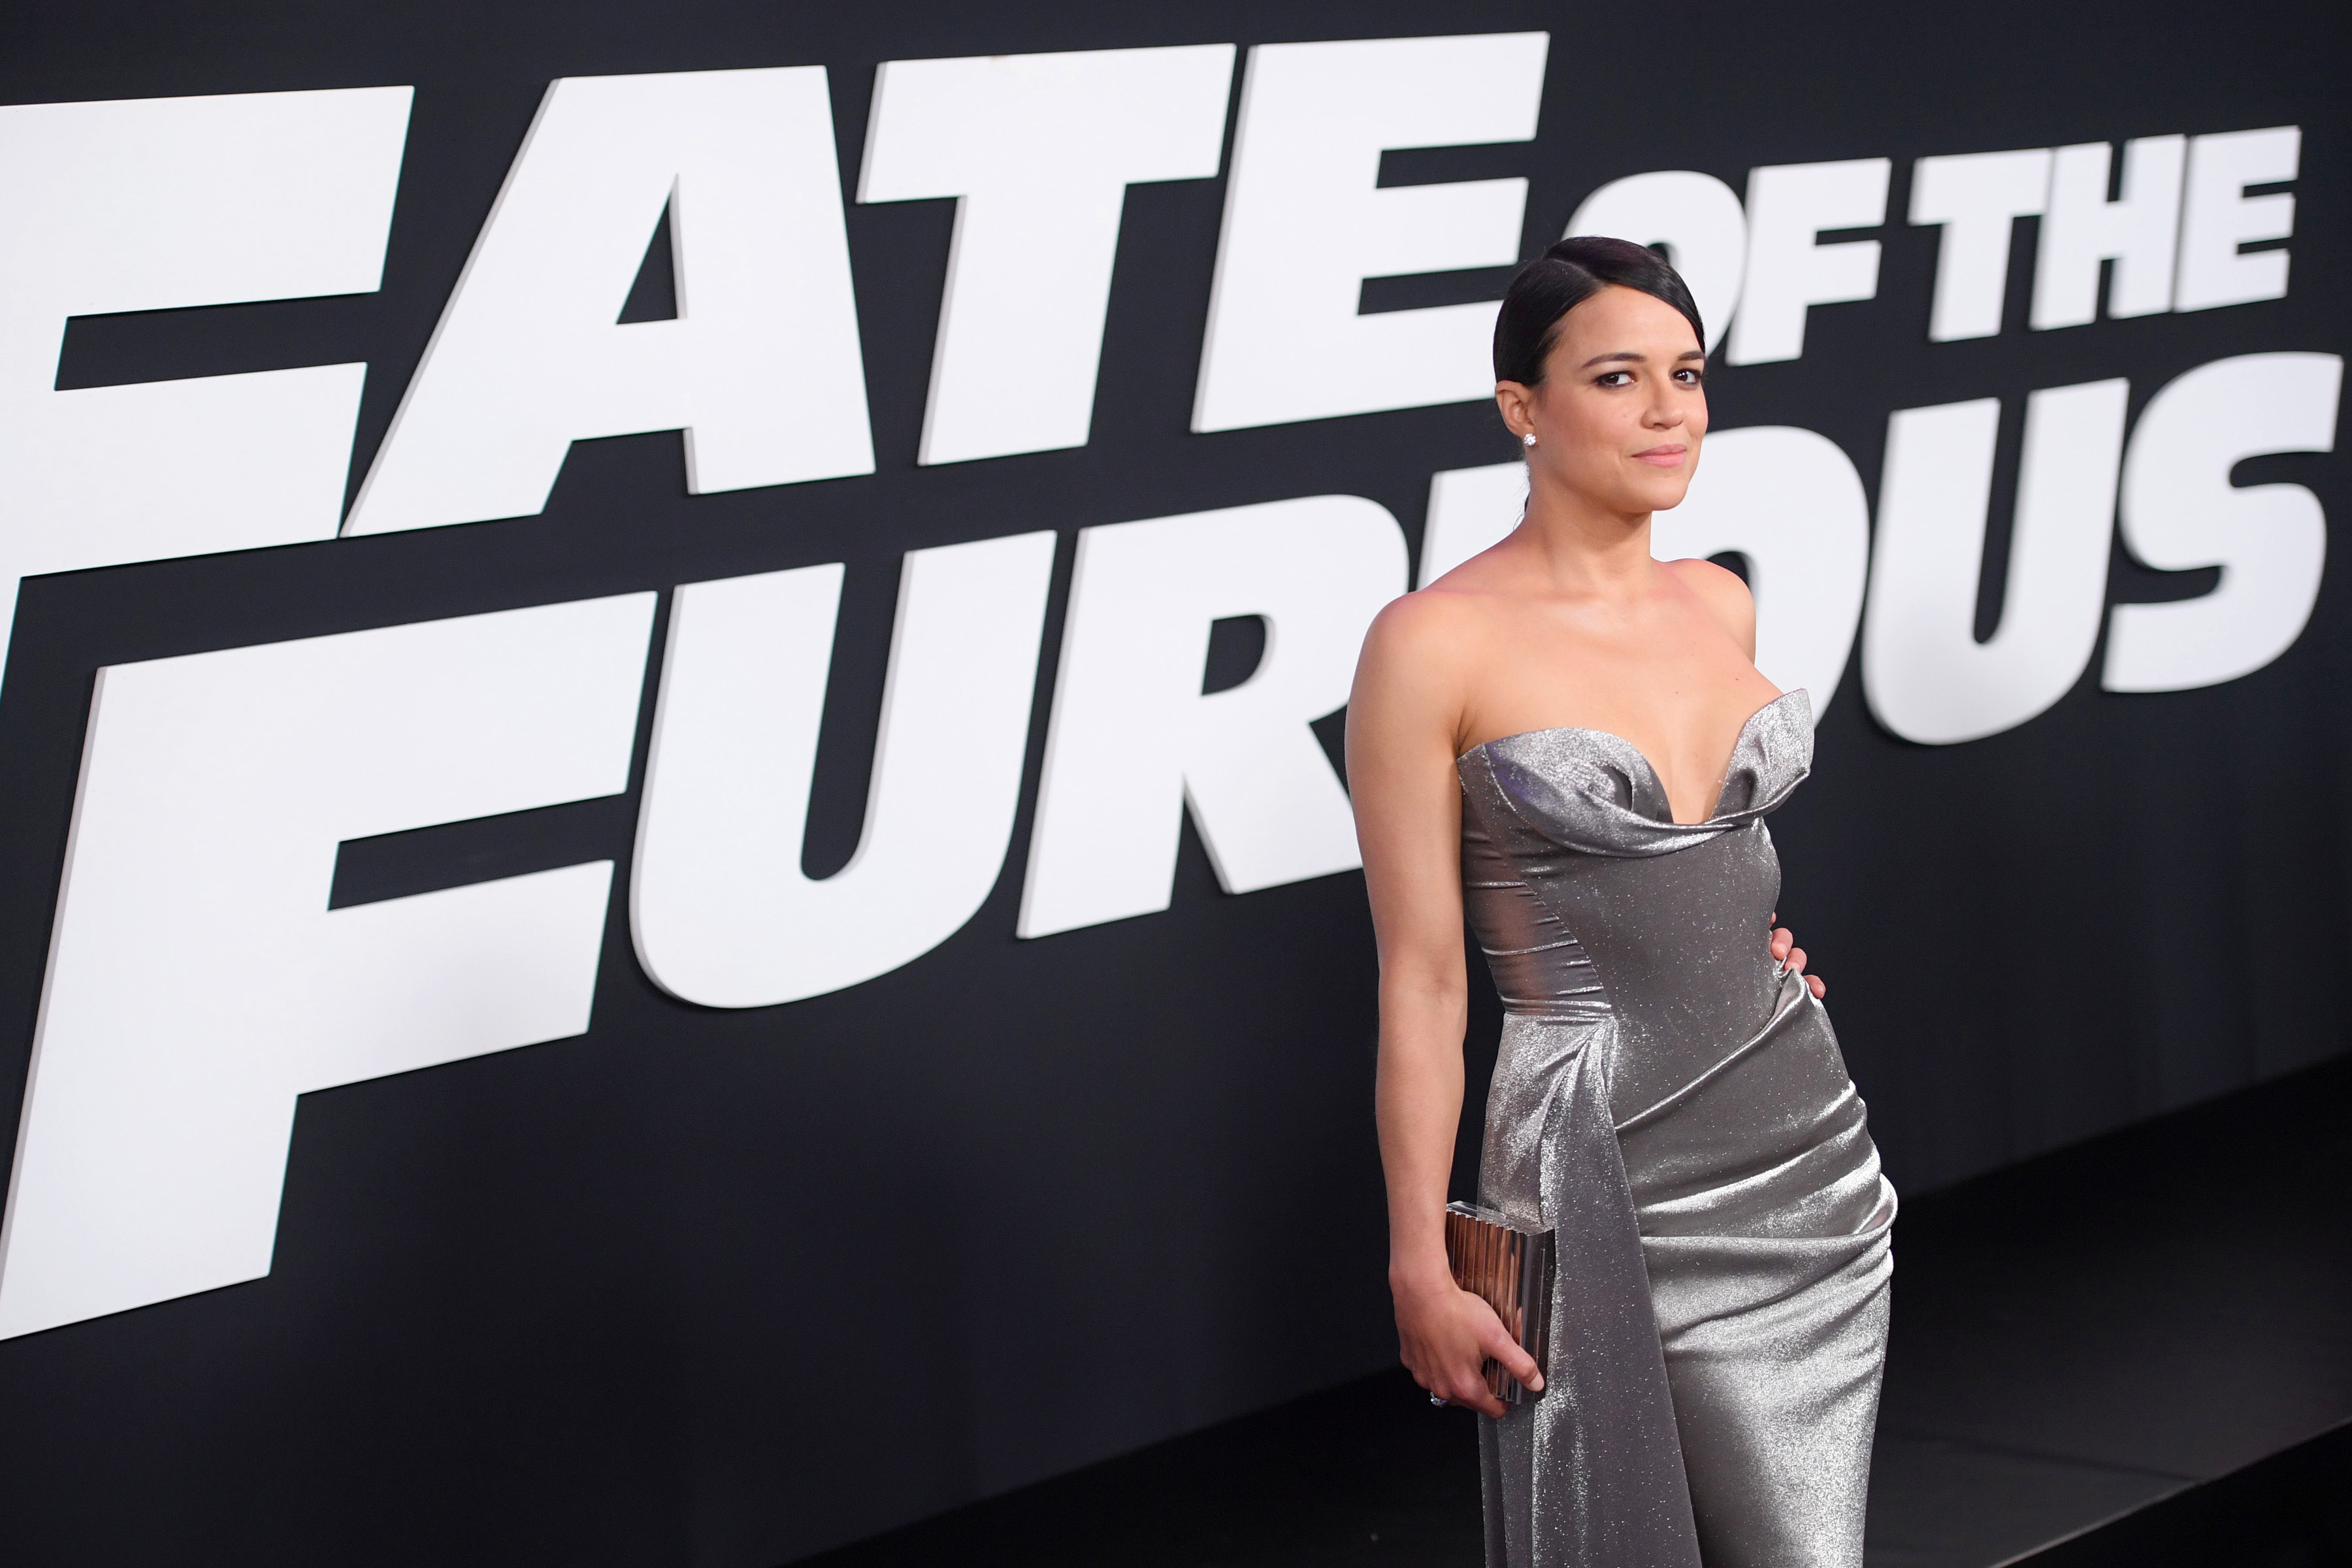 Michelle Rodriguez at an event for The Fate of the Furious (2017)